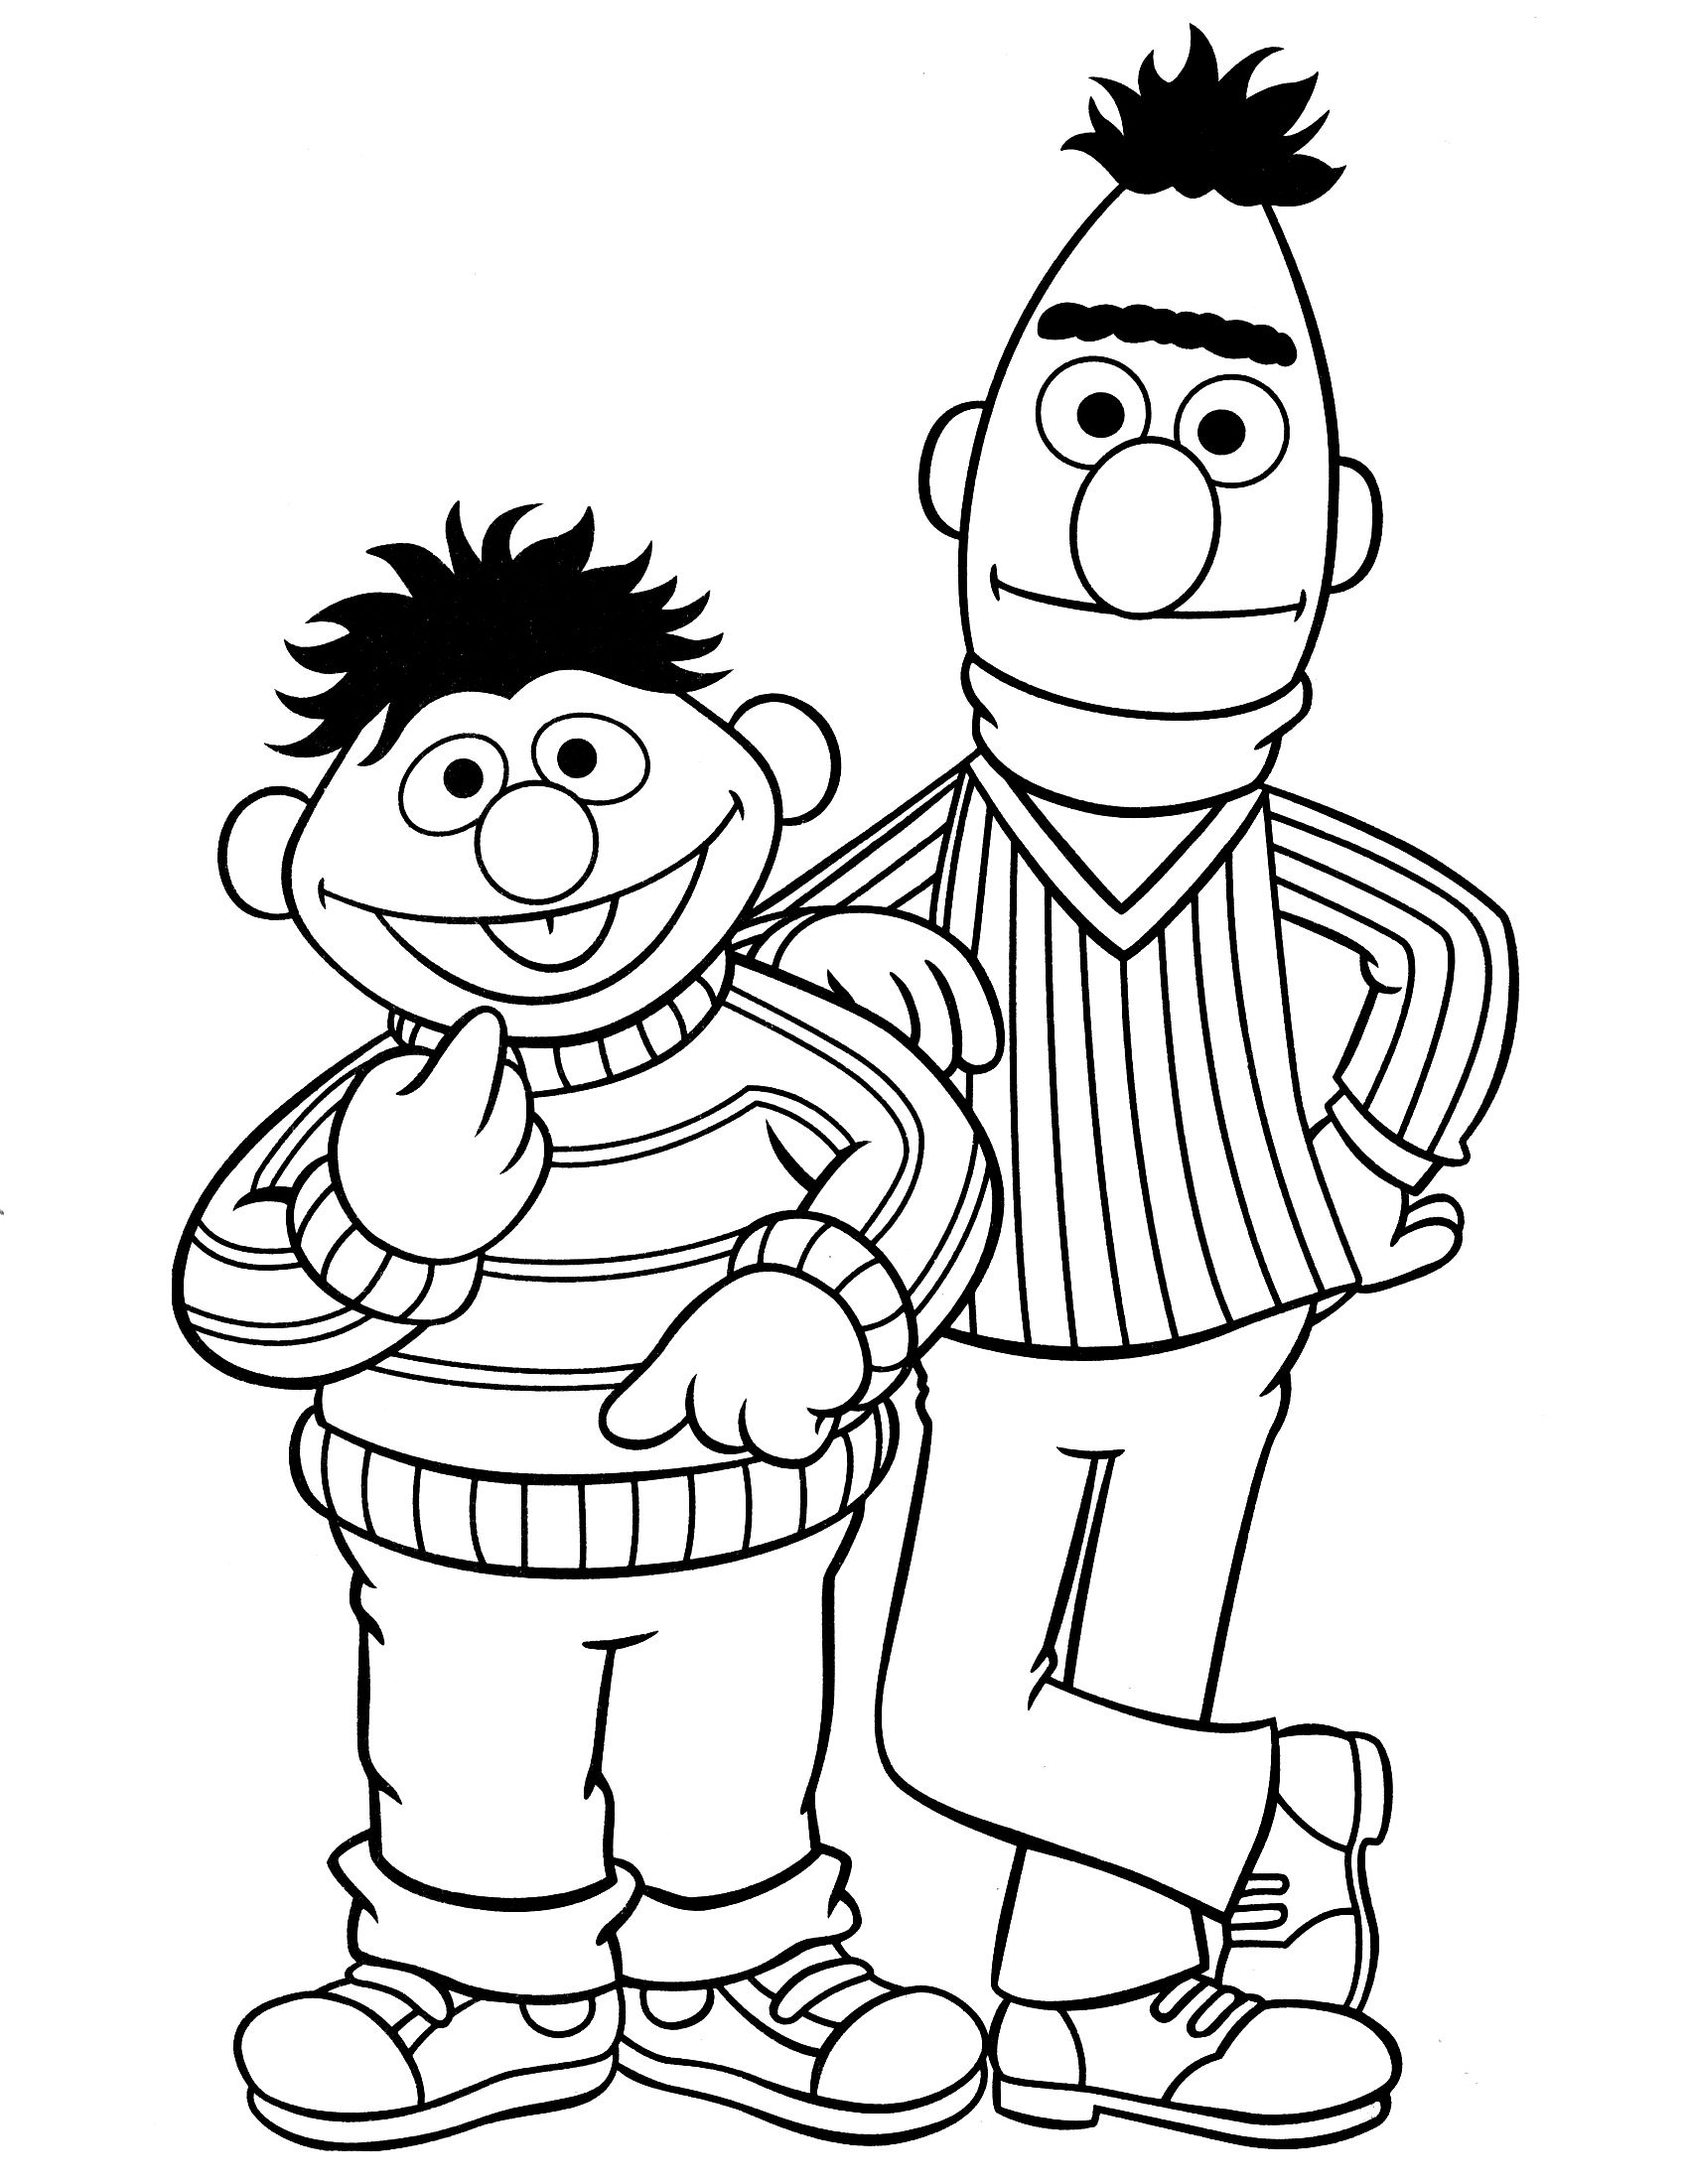 Here we provide some black and white sesame street